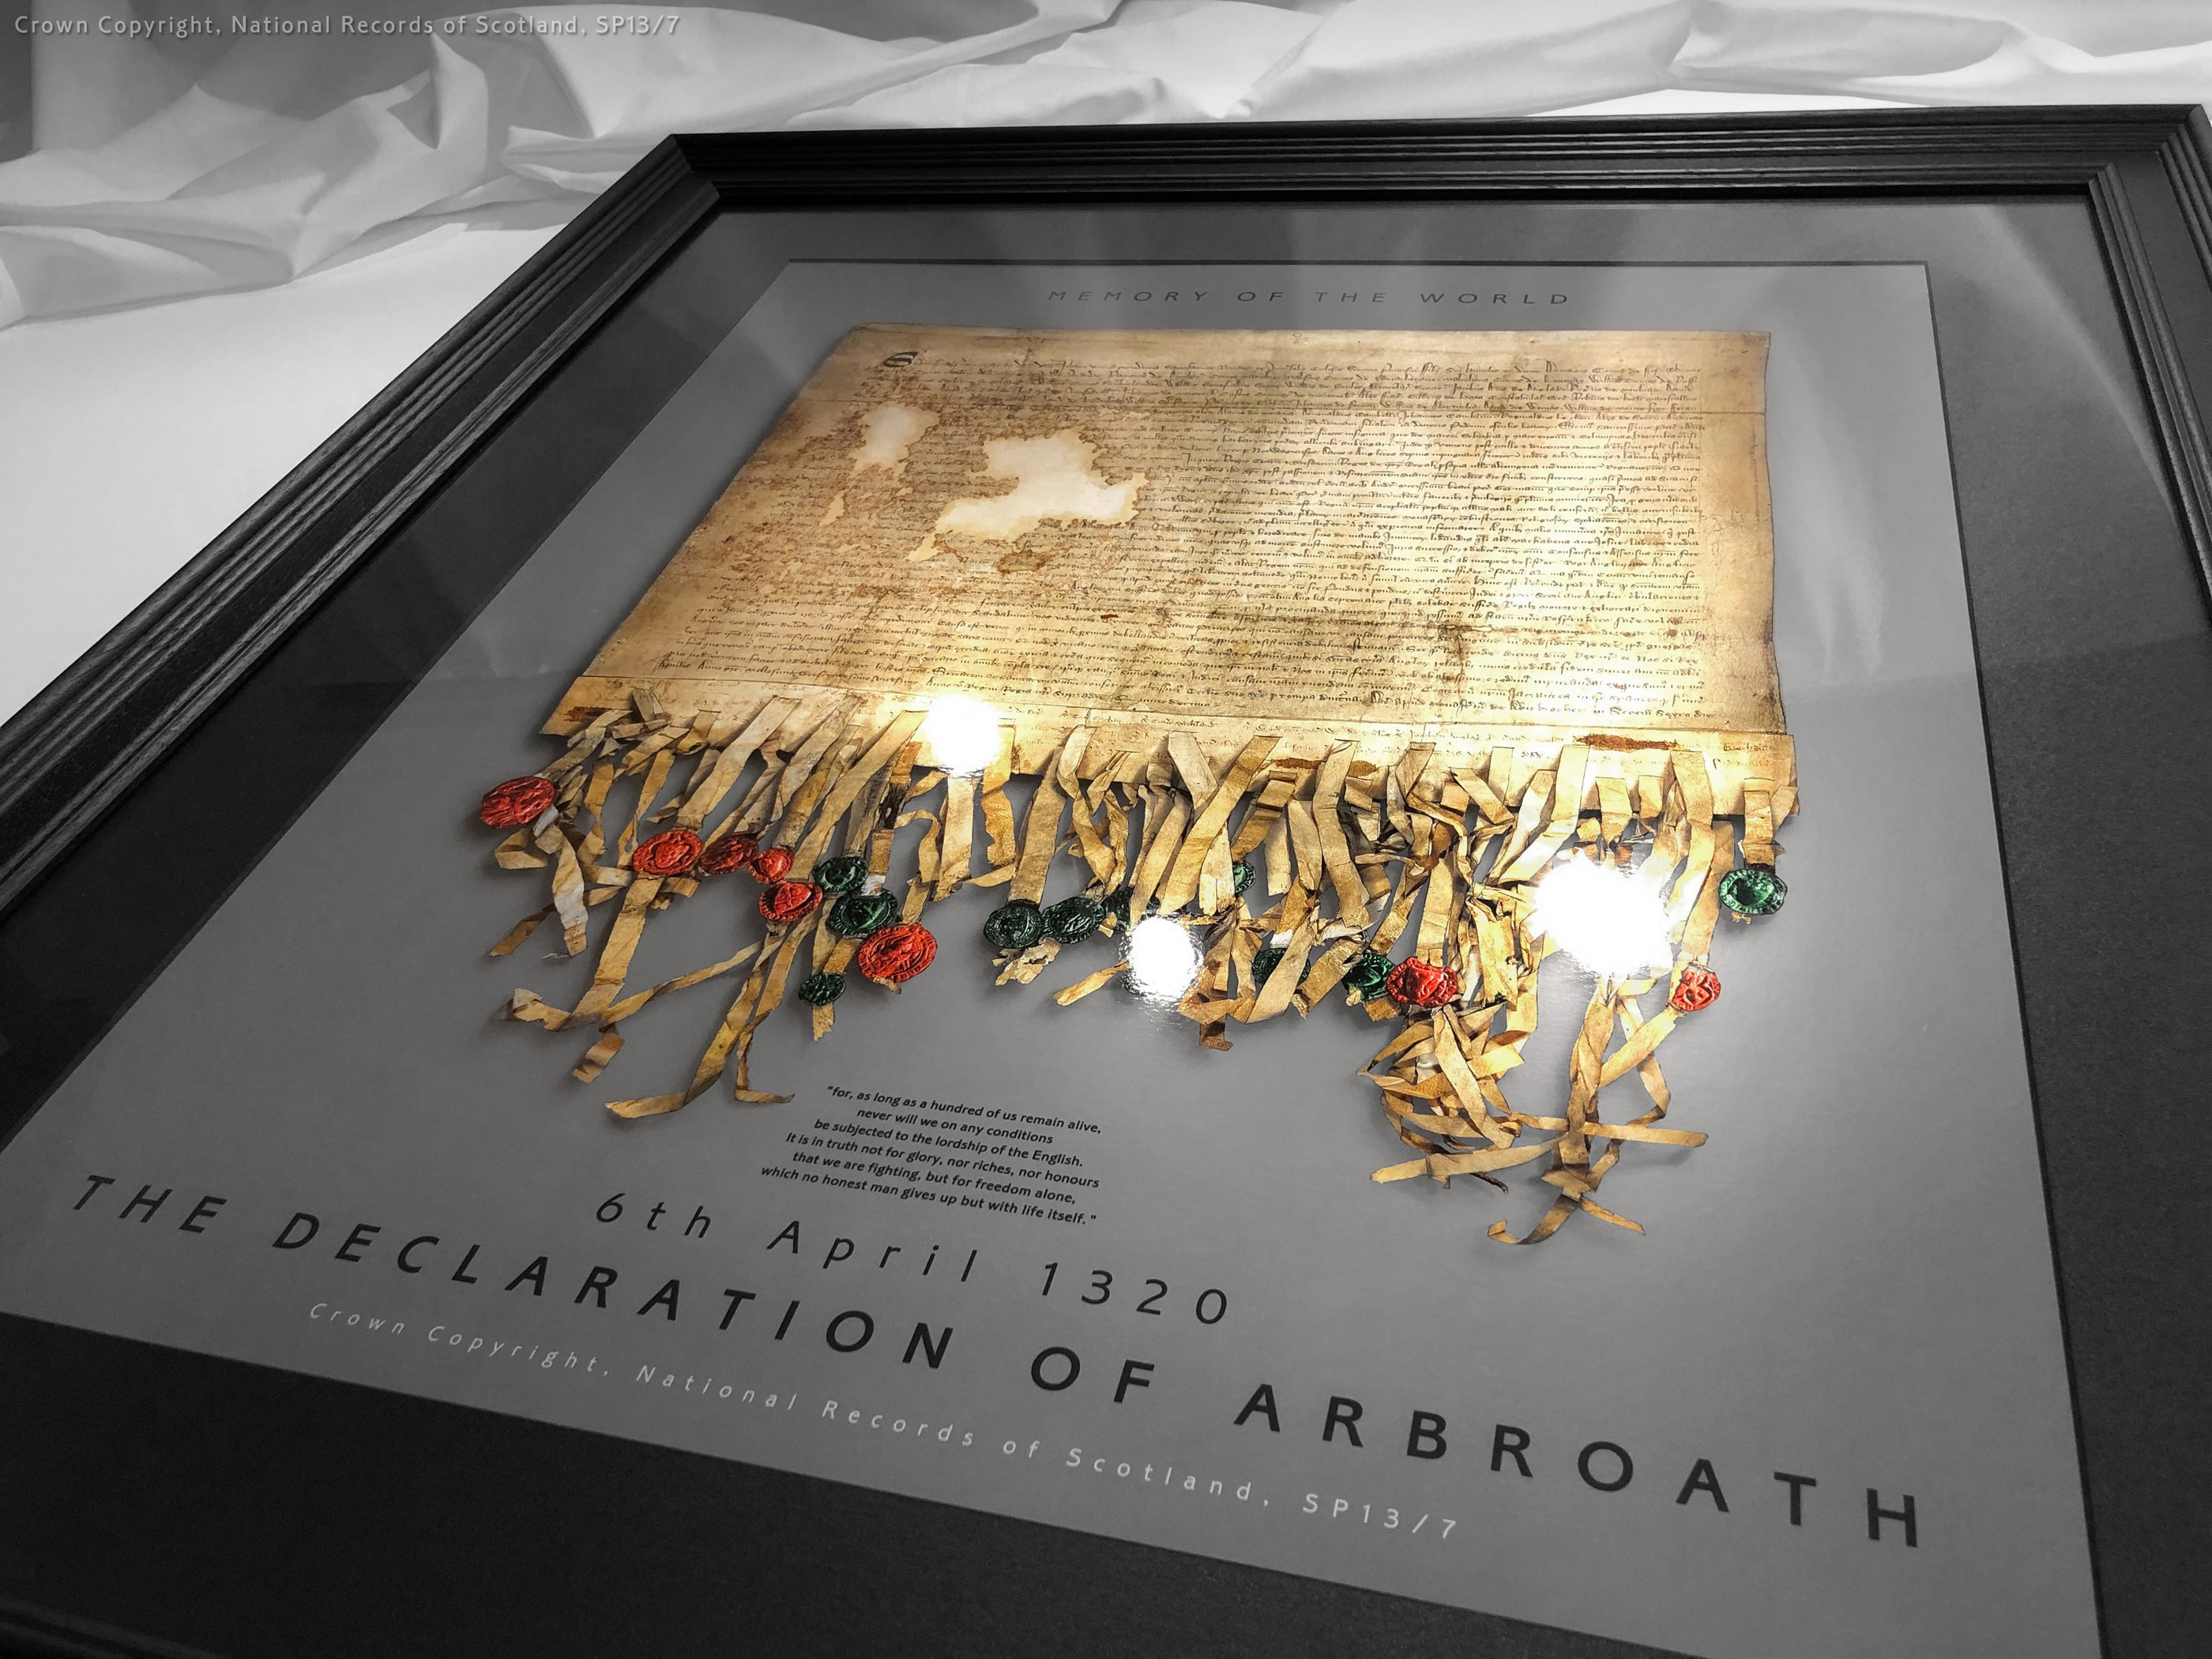 The Declaration of Arbroath Gold Metallic Print Editions - Pewter - with non reflective fine art glass